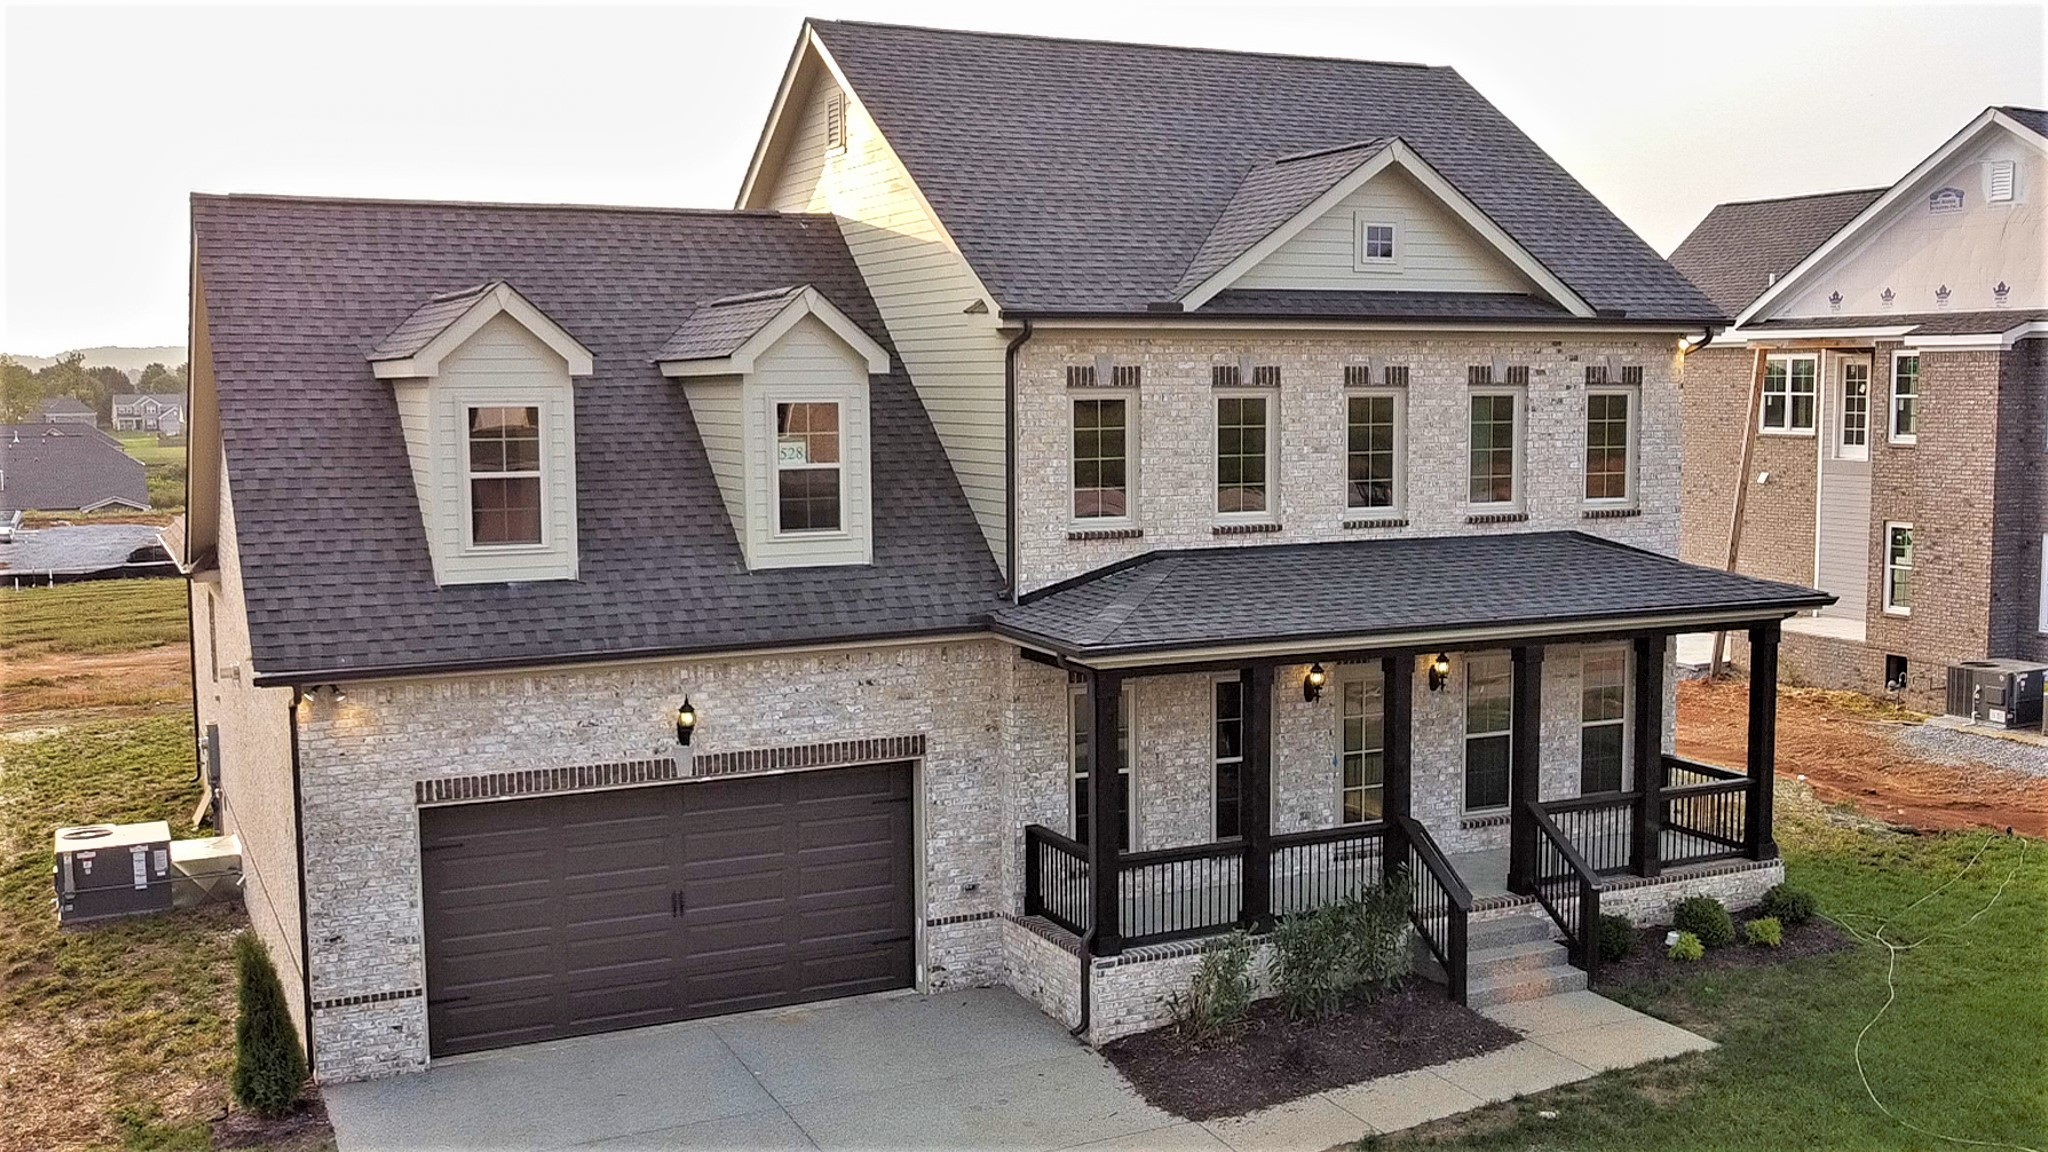 The Jamison Plan!! This 4 bedroom 3 1/2 bath plan with covered front and rear porches. Includes Master on Main with huge open living concept, tiled ceramic shower, oversized bedrooms with an additional suite, and an over the top Bonus Room. Legendary hand-built quality by local builder John Maher.  Ask about the many upgrades and incentives that come with this plan. There is a reason that John Maher Builders has been #1 in Spring Hill for 25 years.  Come and see why.  Take a Virtual Tour